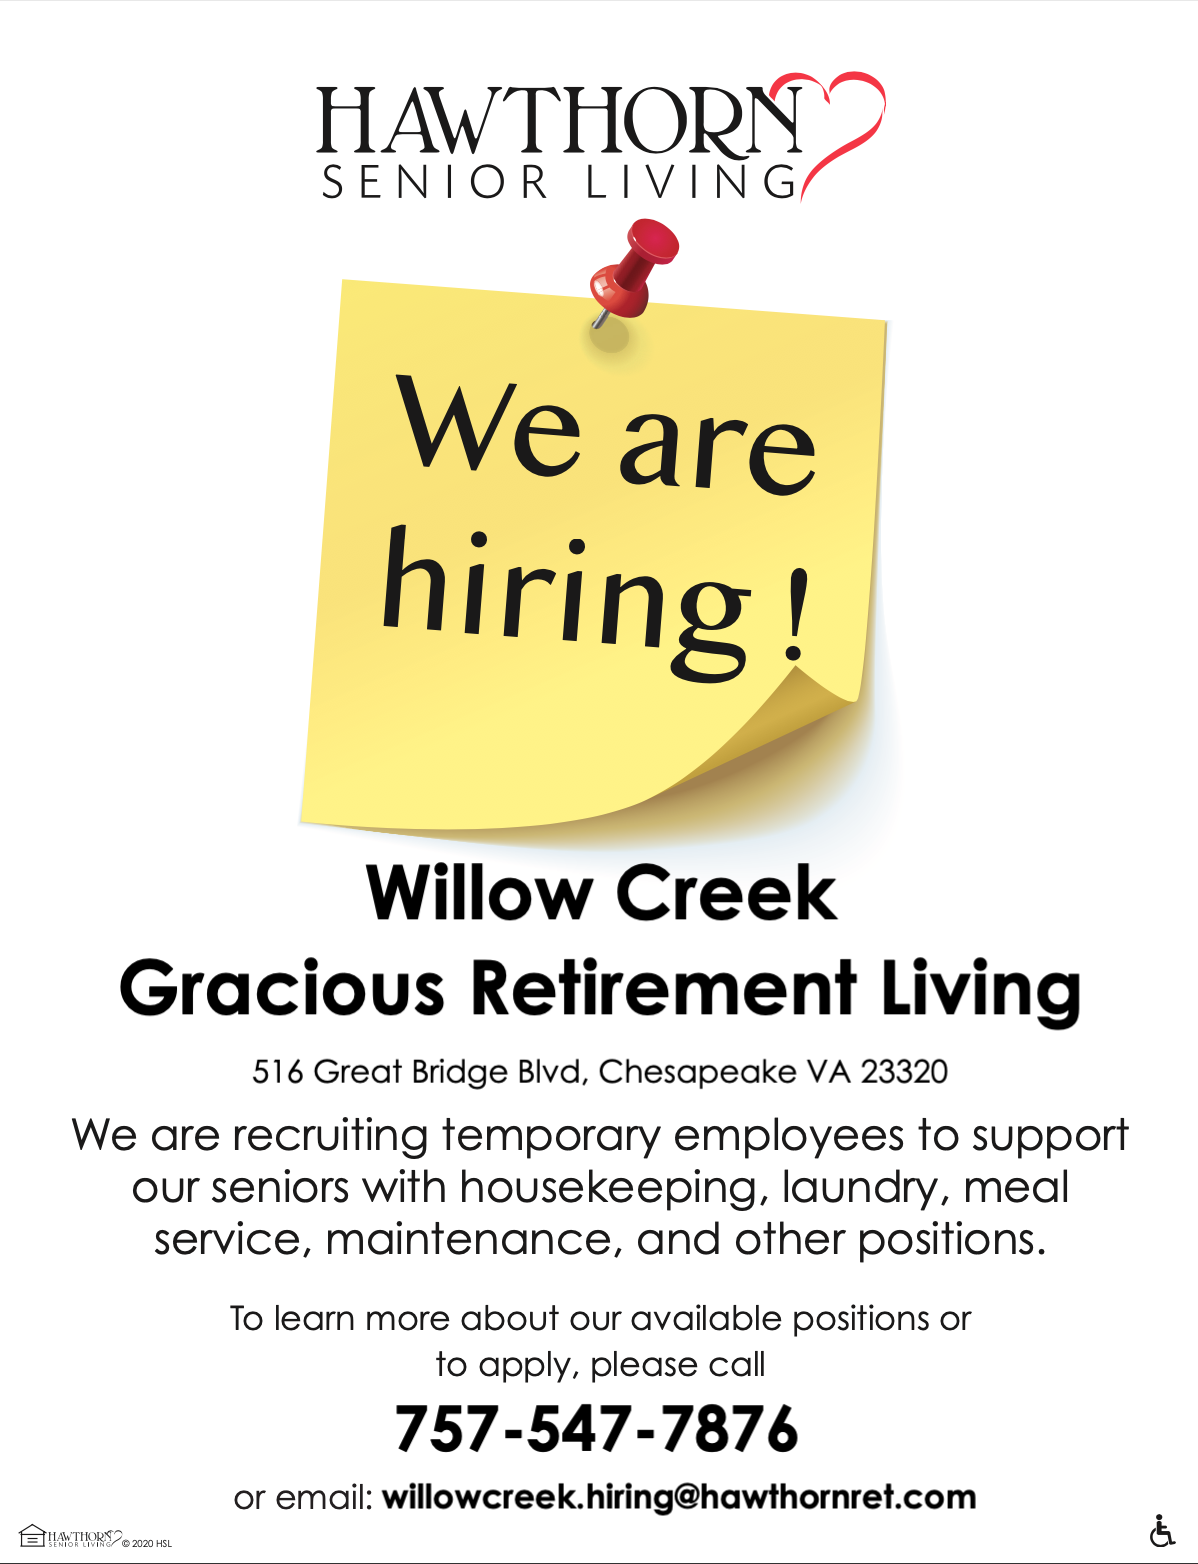 Willow Creek Hiring